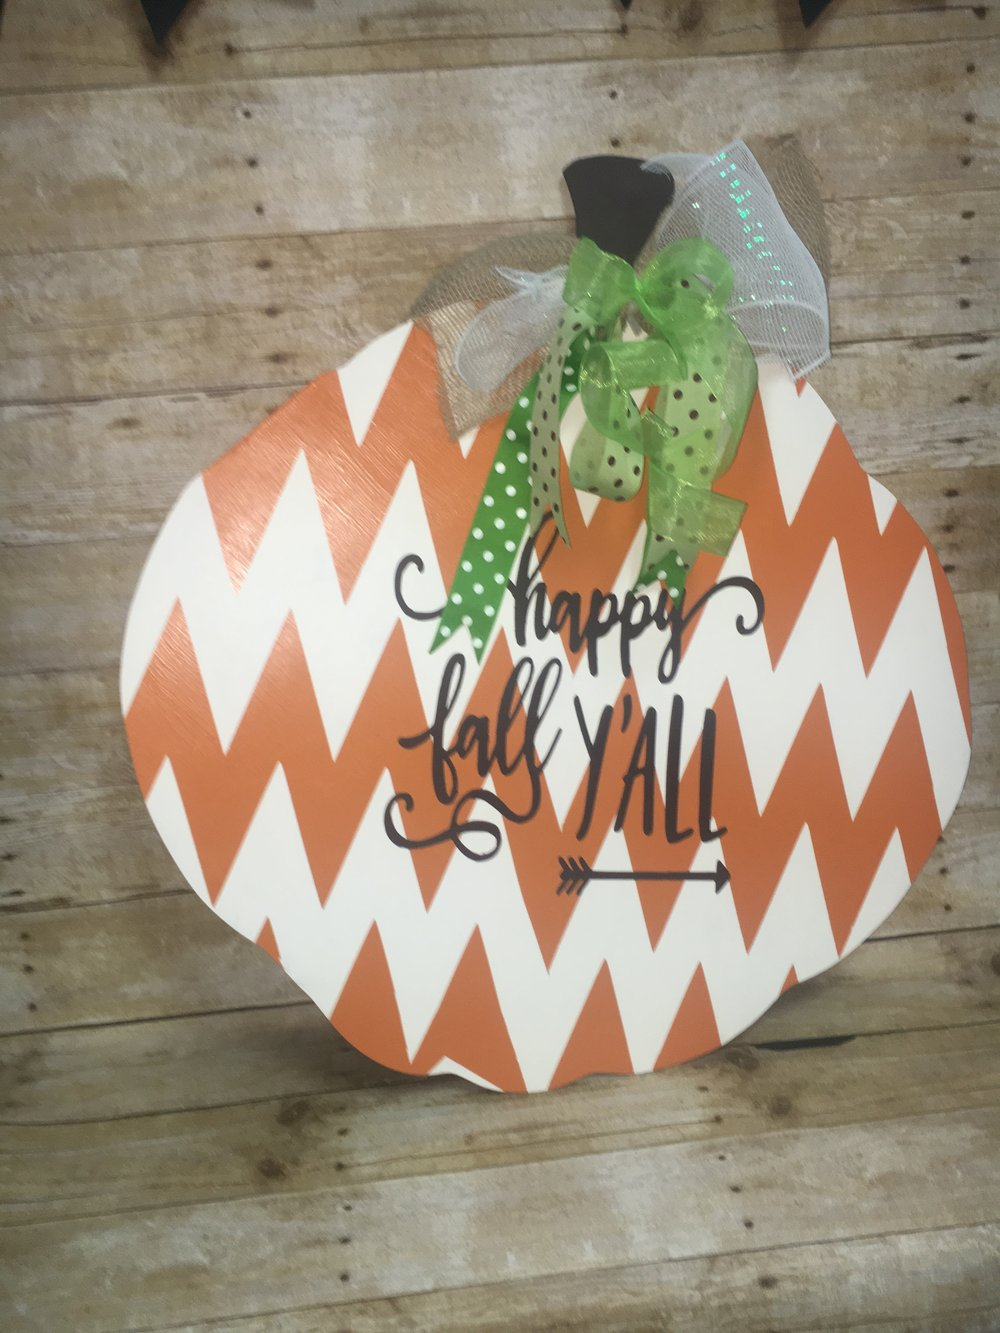 Pumpkin Door Hanger - $35 -$45 various sizes and designs available, reversible design also available for $10